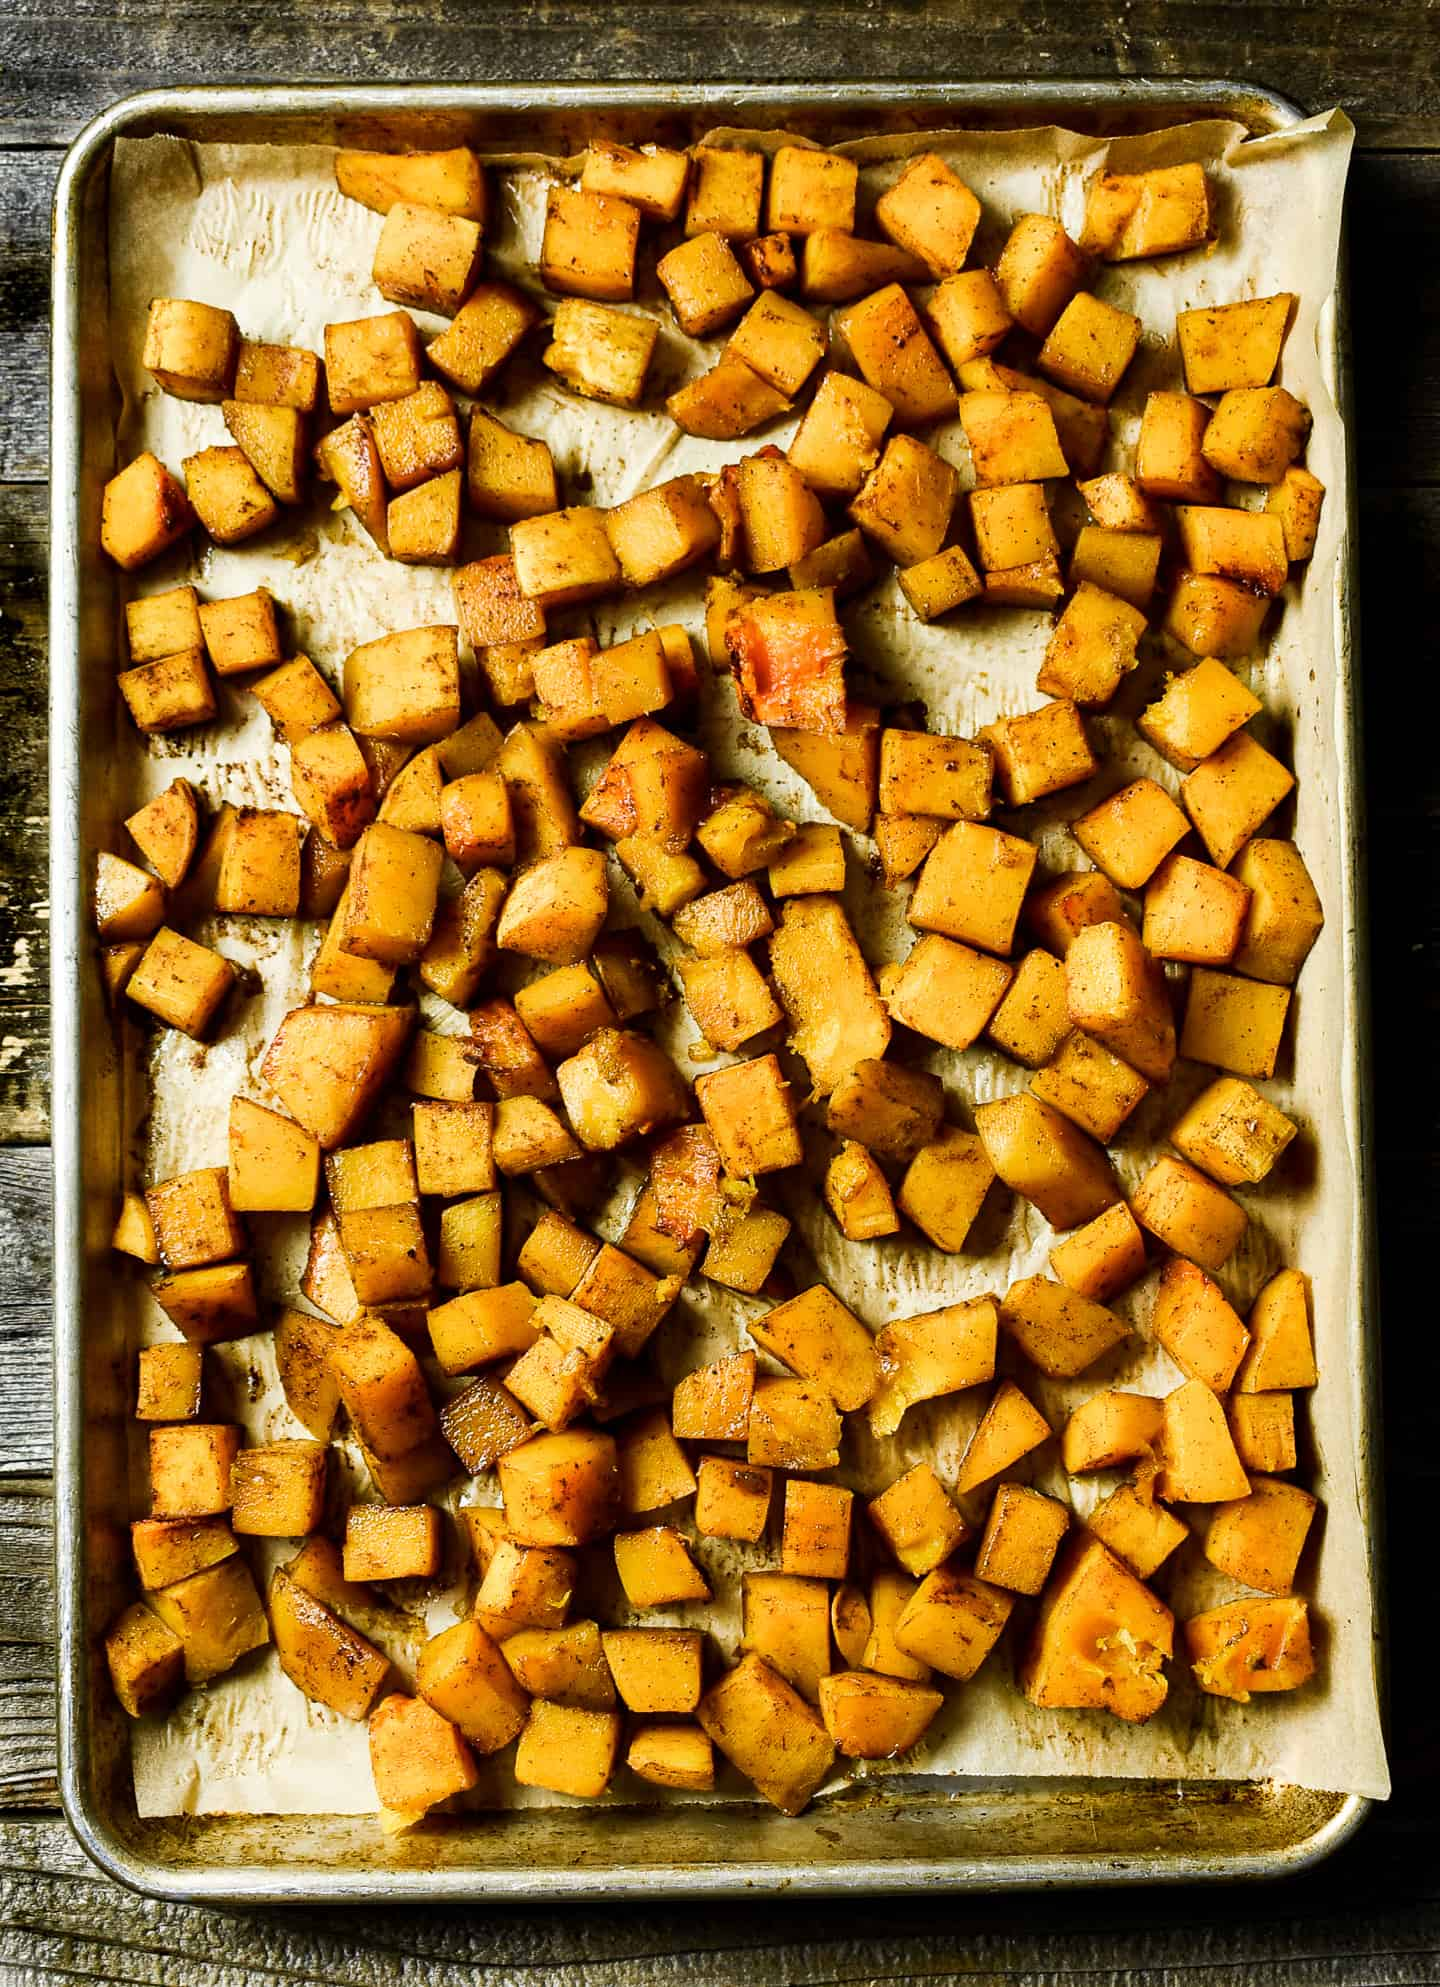 Roasted butternut squash on baking sheet with parchment paper.